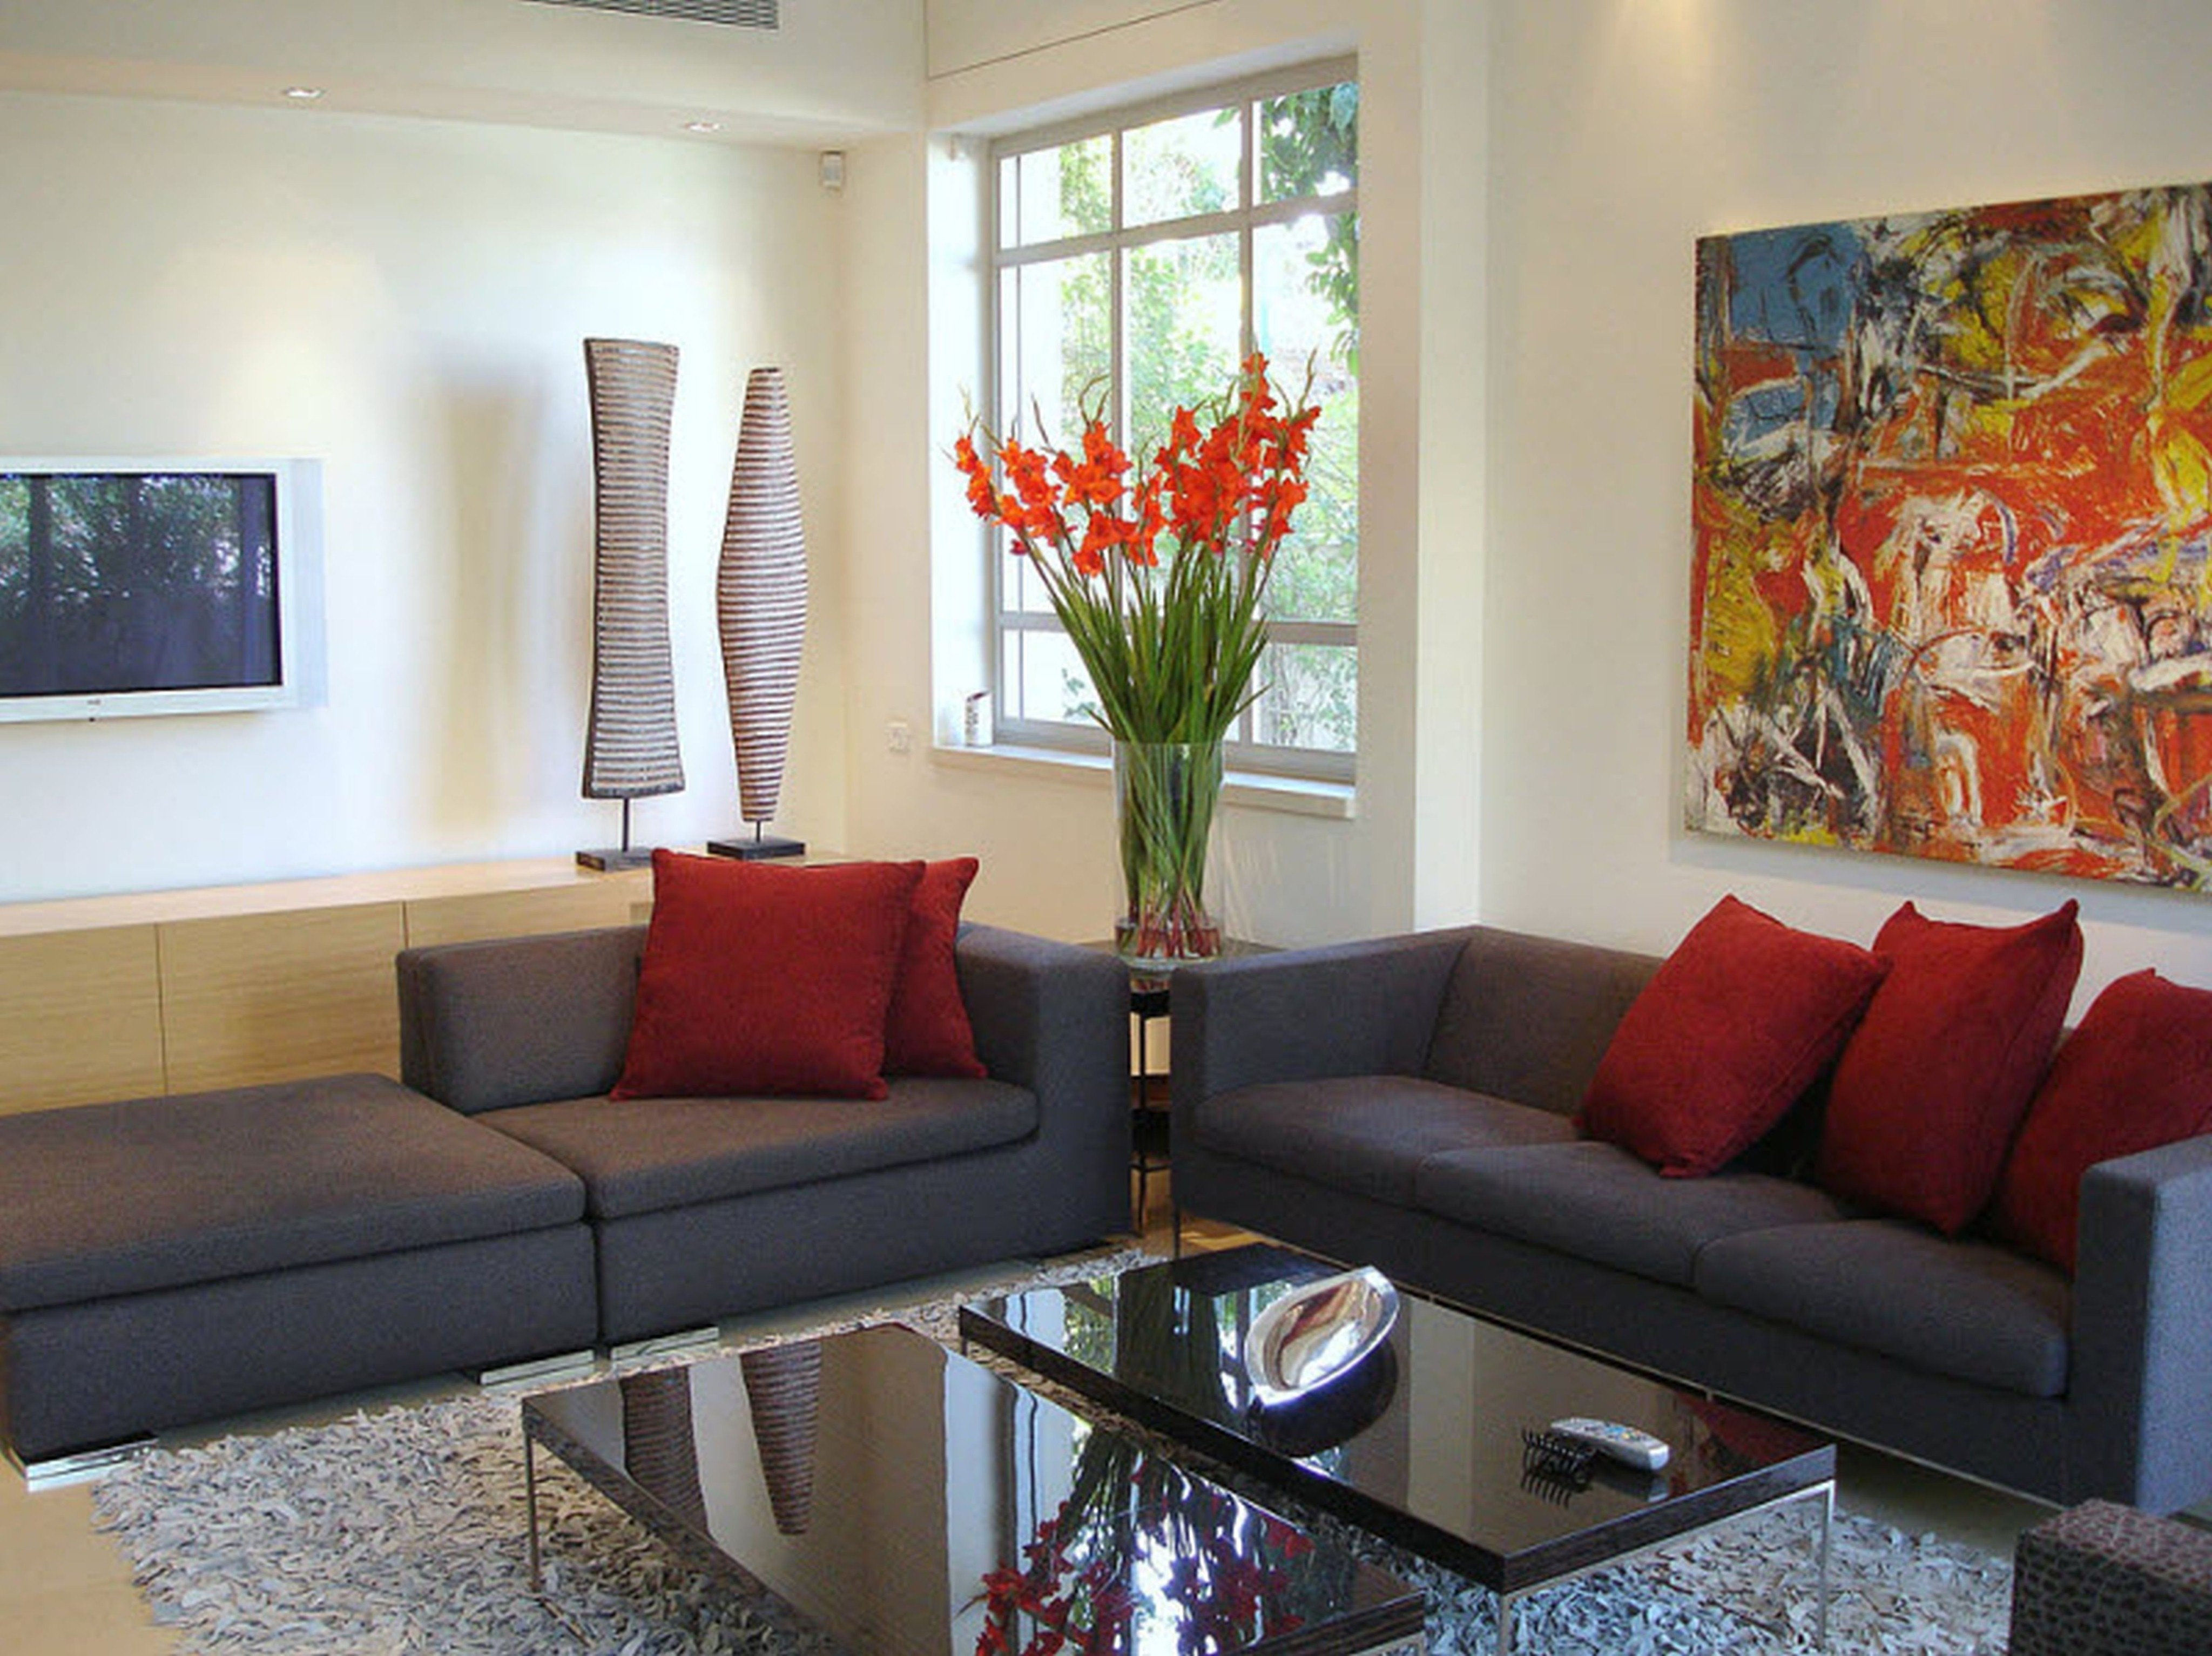 10 Ideal Small Living Room Decorating Ideas On A Budget decorating your design a house with perfect beautifull small living 1 2020